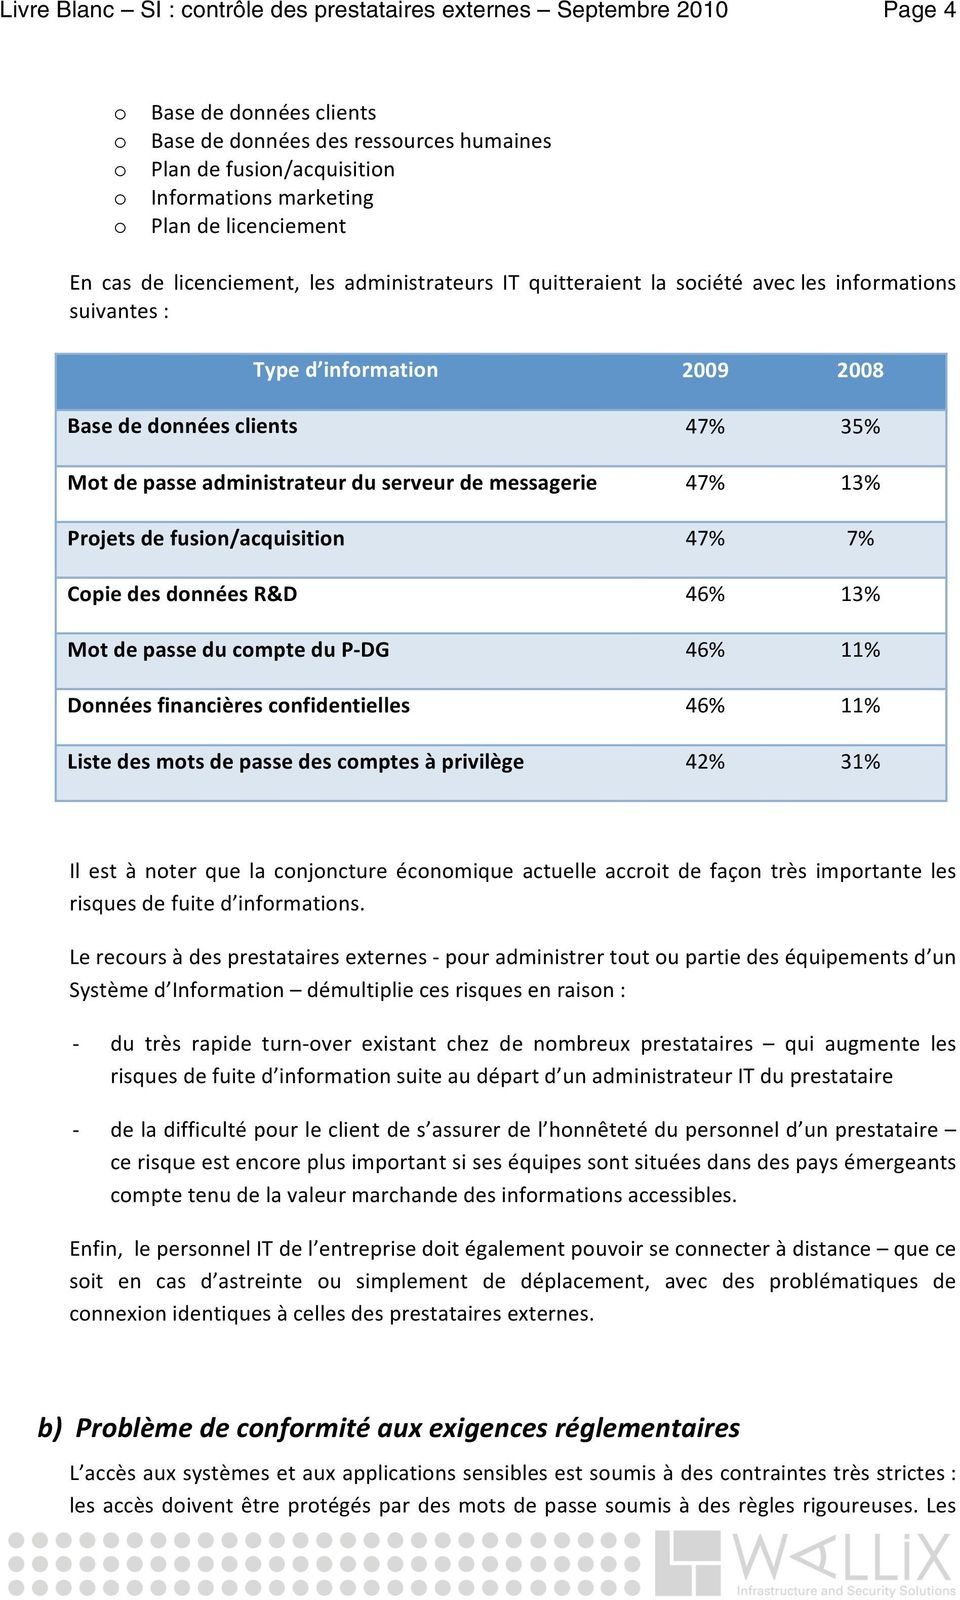 Motdepasseadministrateurduserveurdemessagerie 47% 13% Projetsdefusion/acquisition 47% 7% CopiedesdonnéesR&D 46% 13% MotdepasseducompteduP DG 46% 11% Donnéesfinancièresconfidentielles 46% 11%